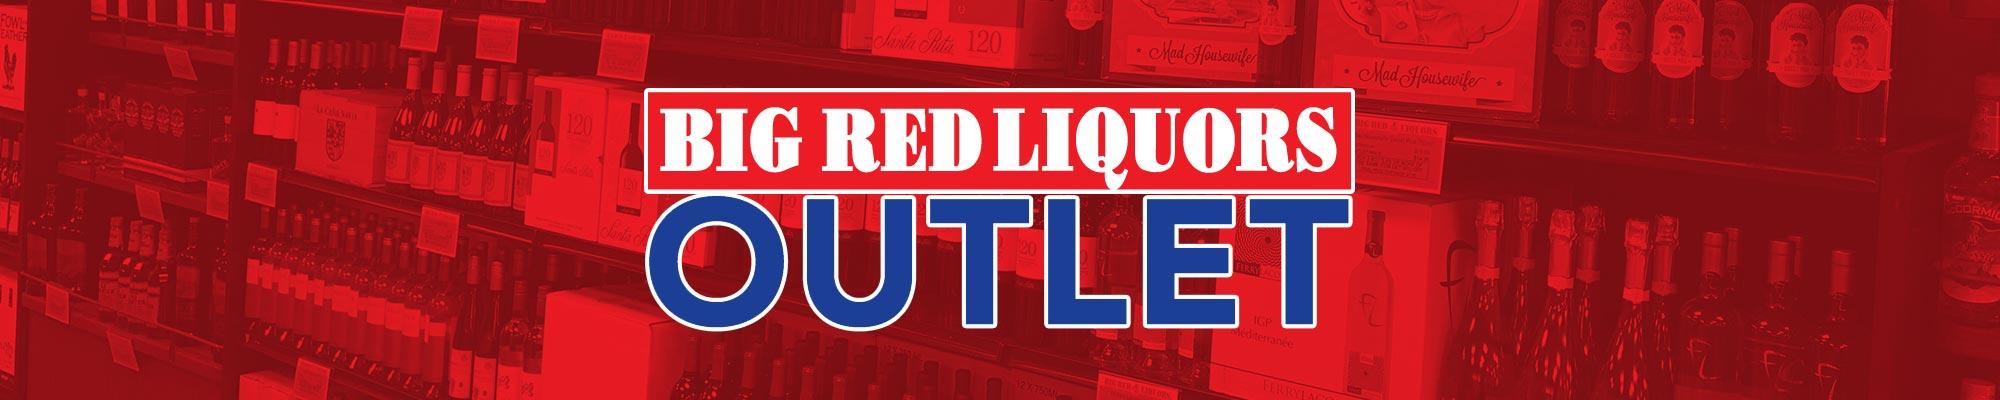 Big Red Liquors OUTLET